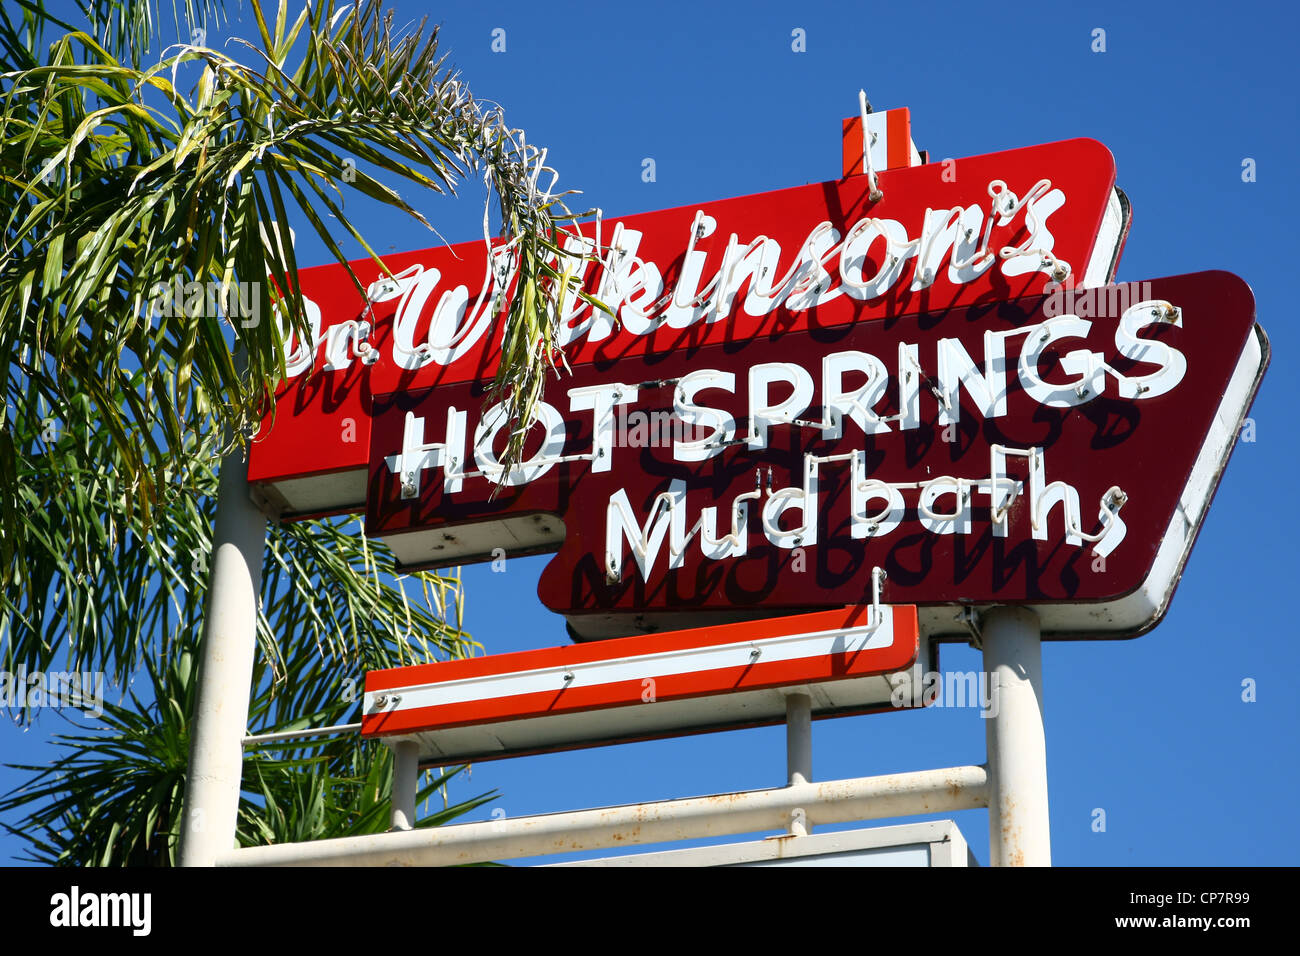 DR. WILKINSONS HOT SPRINGS HOTEL NEON SIGN 06 October 2011 - Stock Image